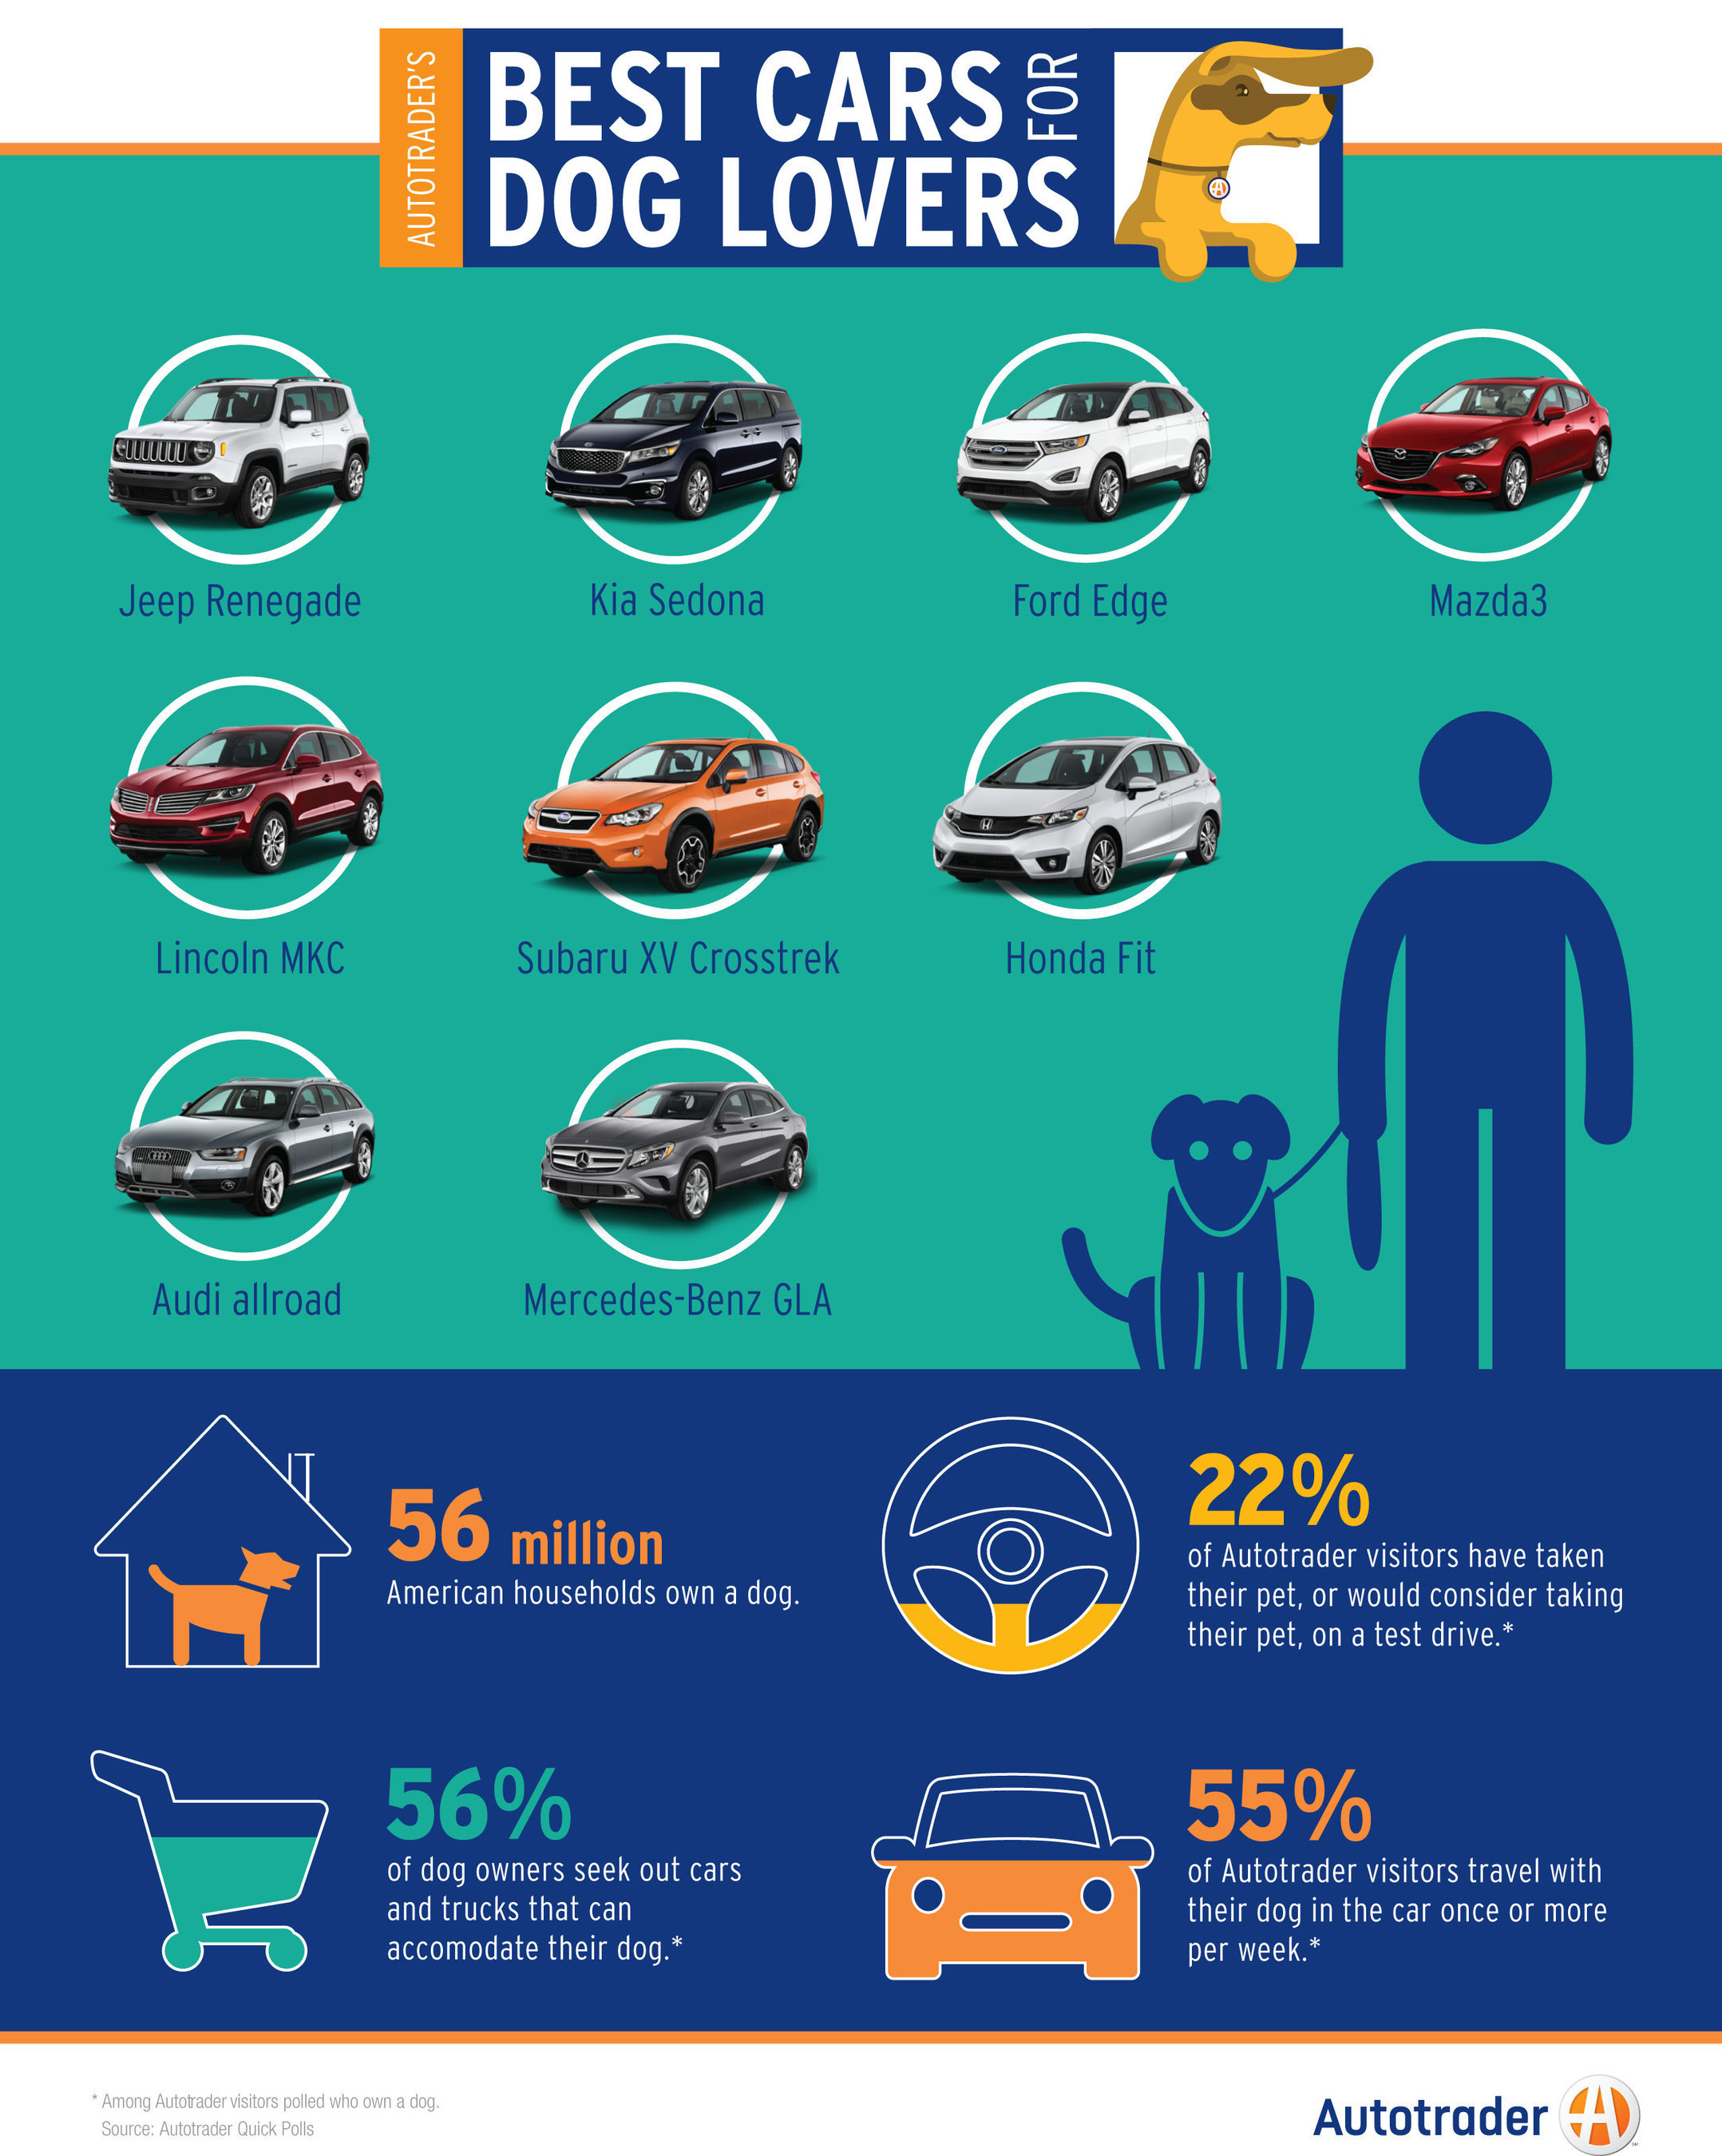 Autotrader - Best Cars for Dog Lovers Infographic